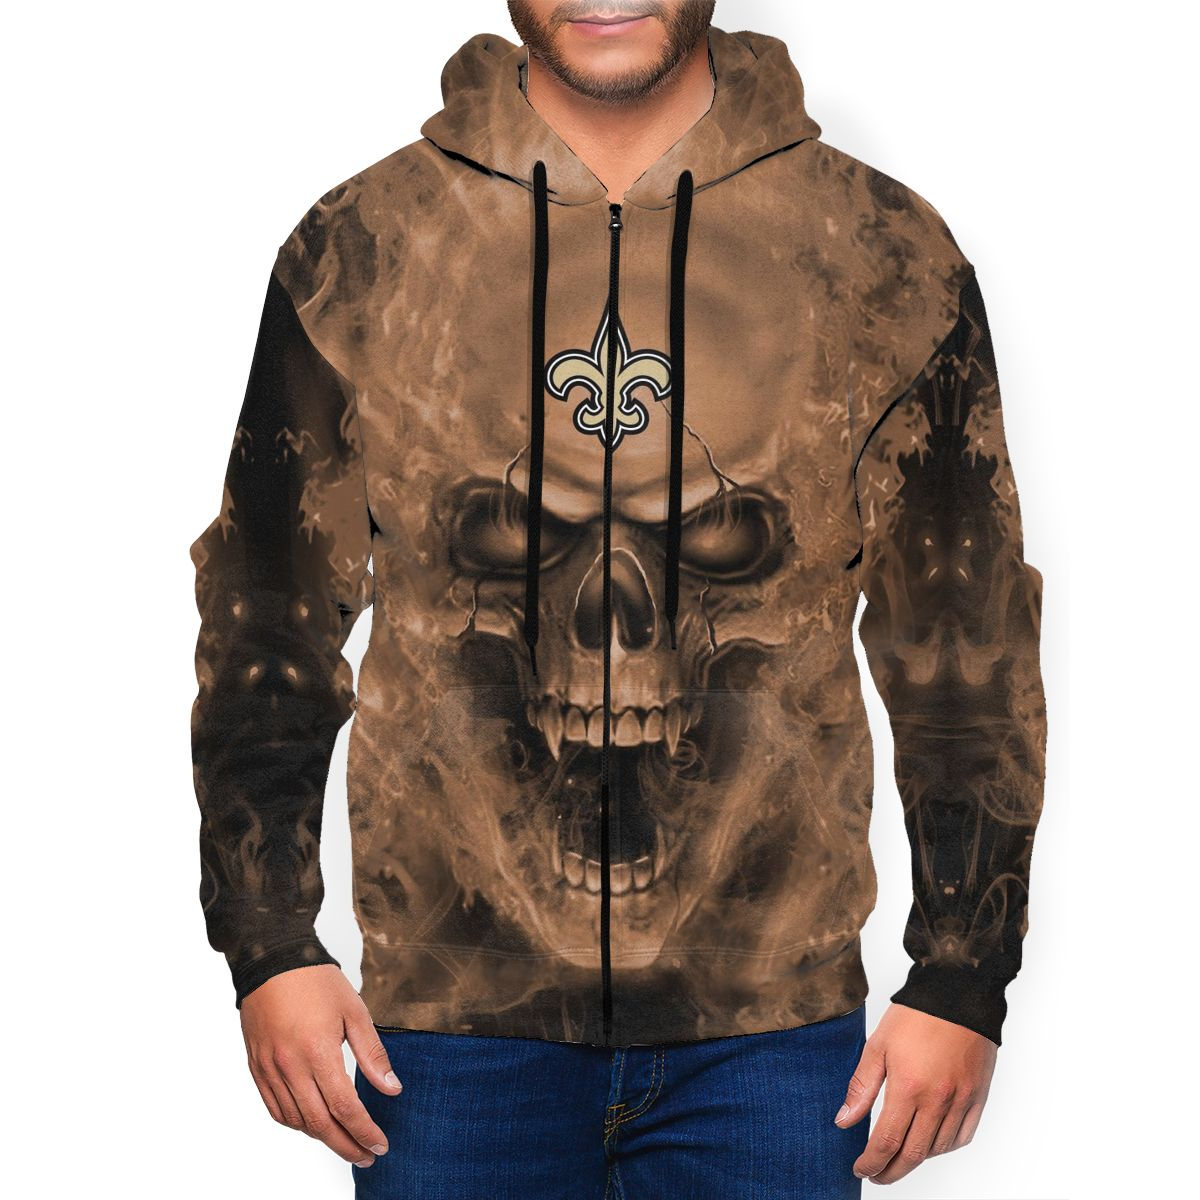 3D Skull Saints Men's Zip Hooded Sweatshirt